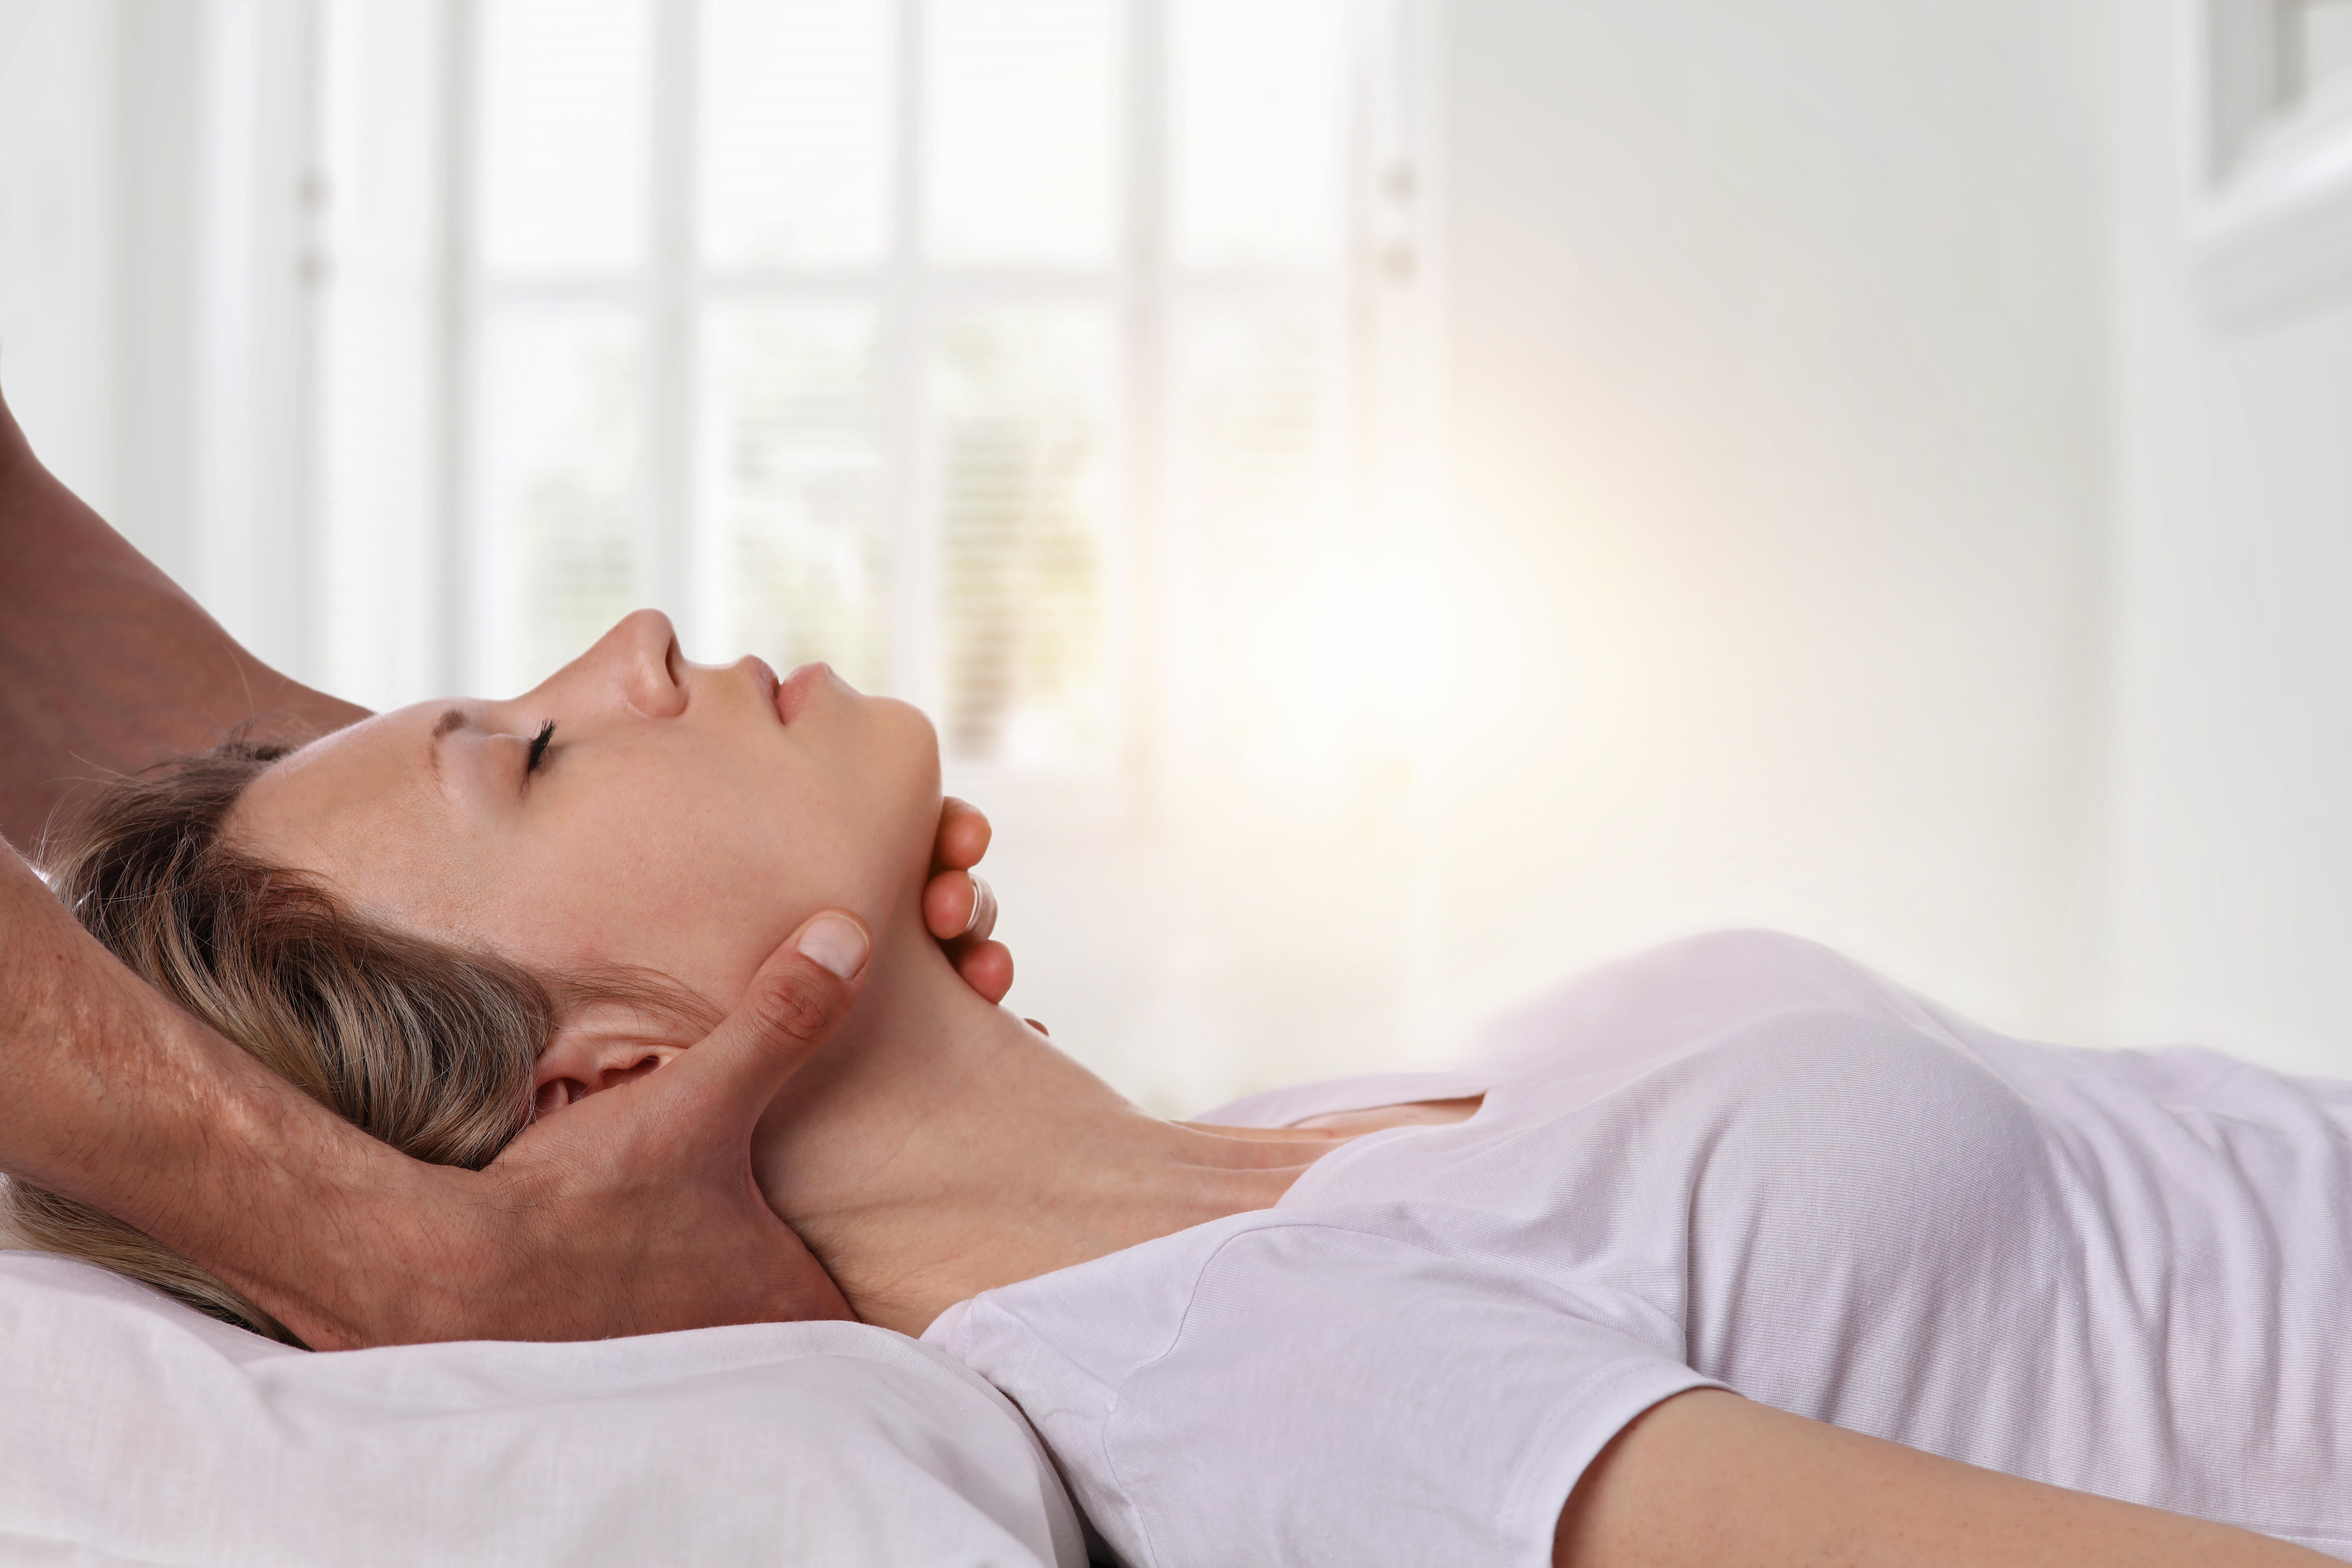 Woman getting chiropractic wellness care